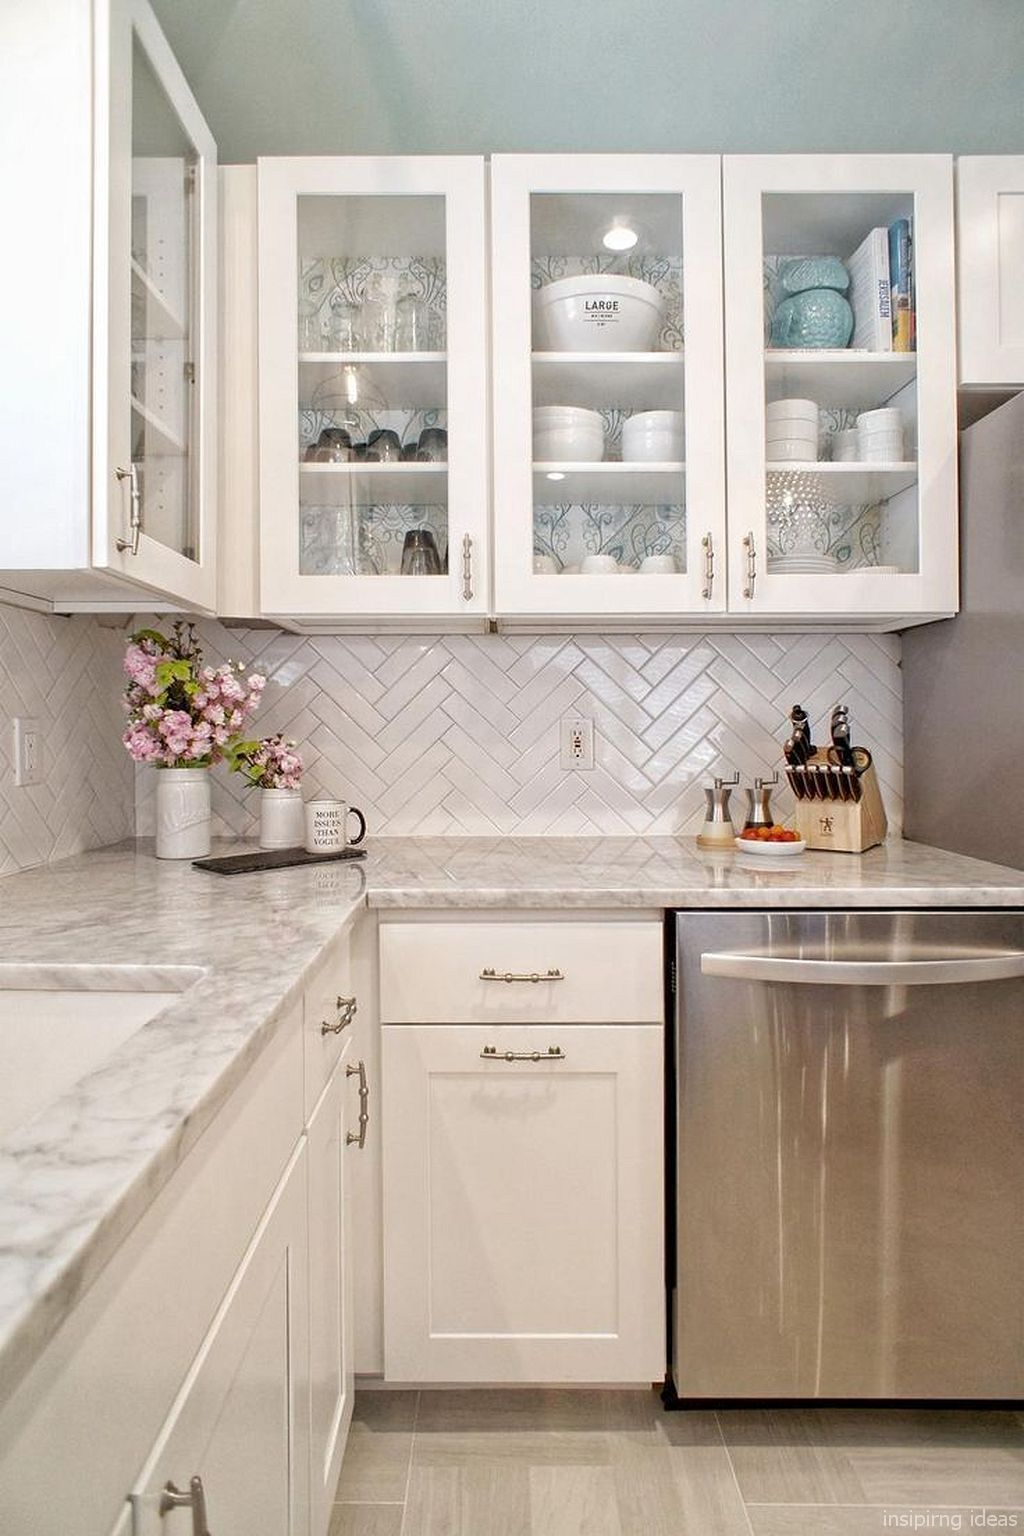 Kitchen Backsplash Ideas With White Cabinets Beautiful Modern Farmhouse Kitchen Backsplash Ideas 14 In 2019